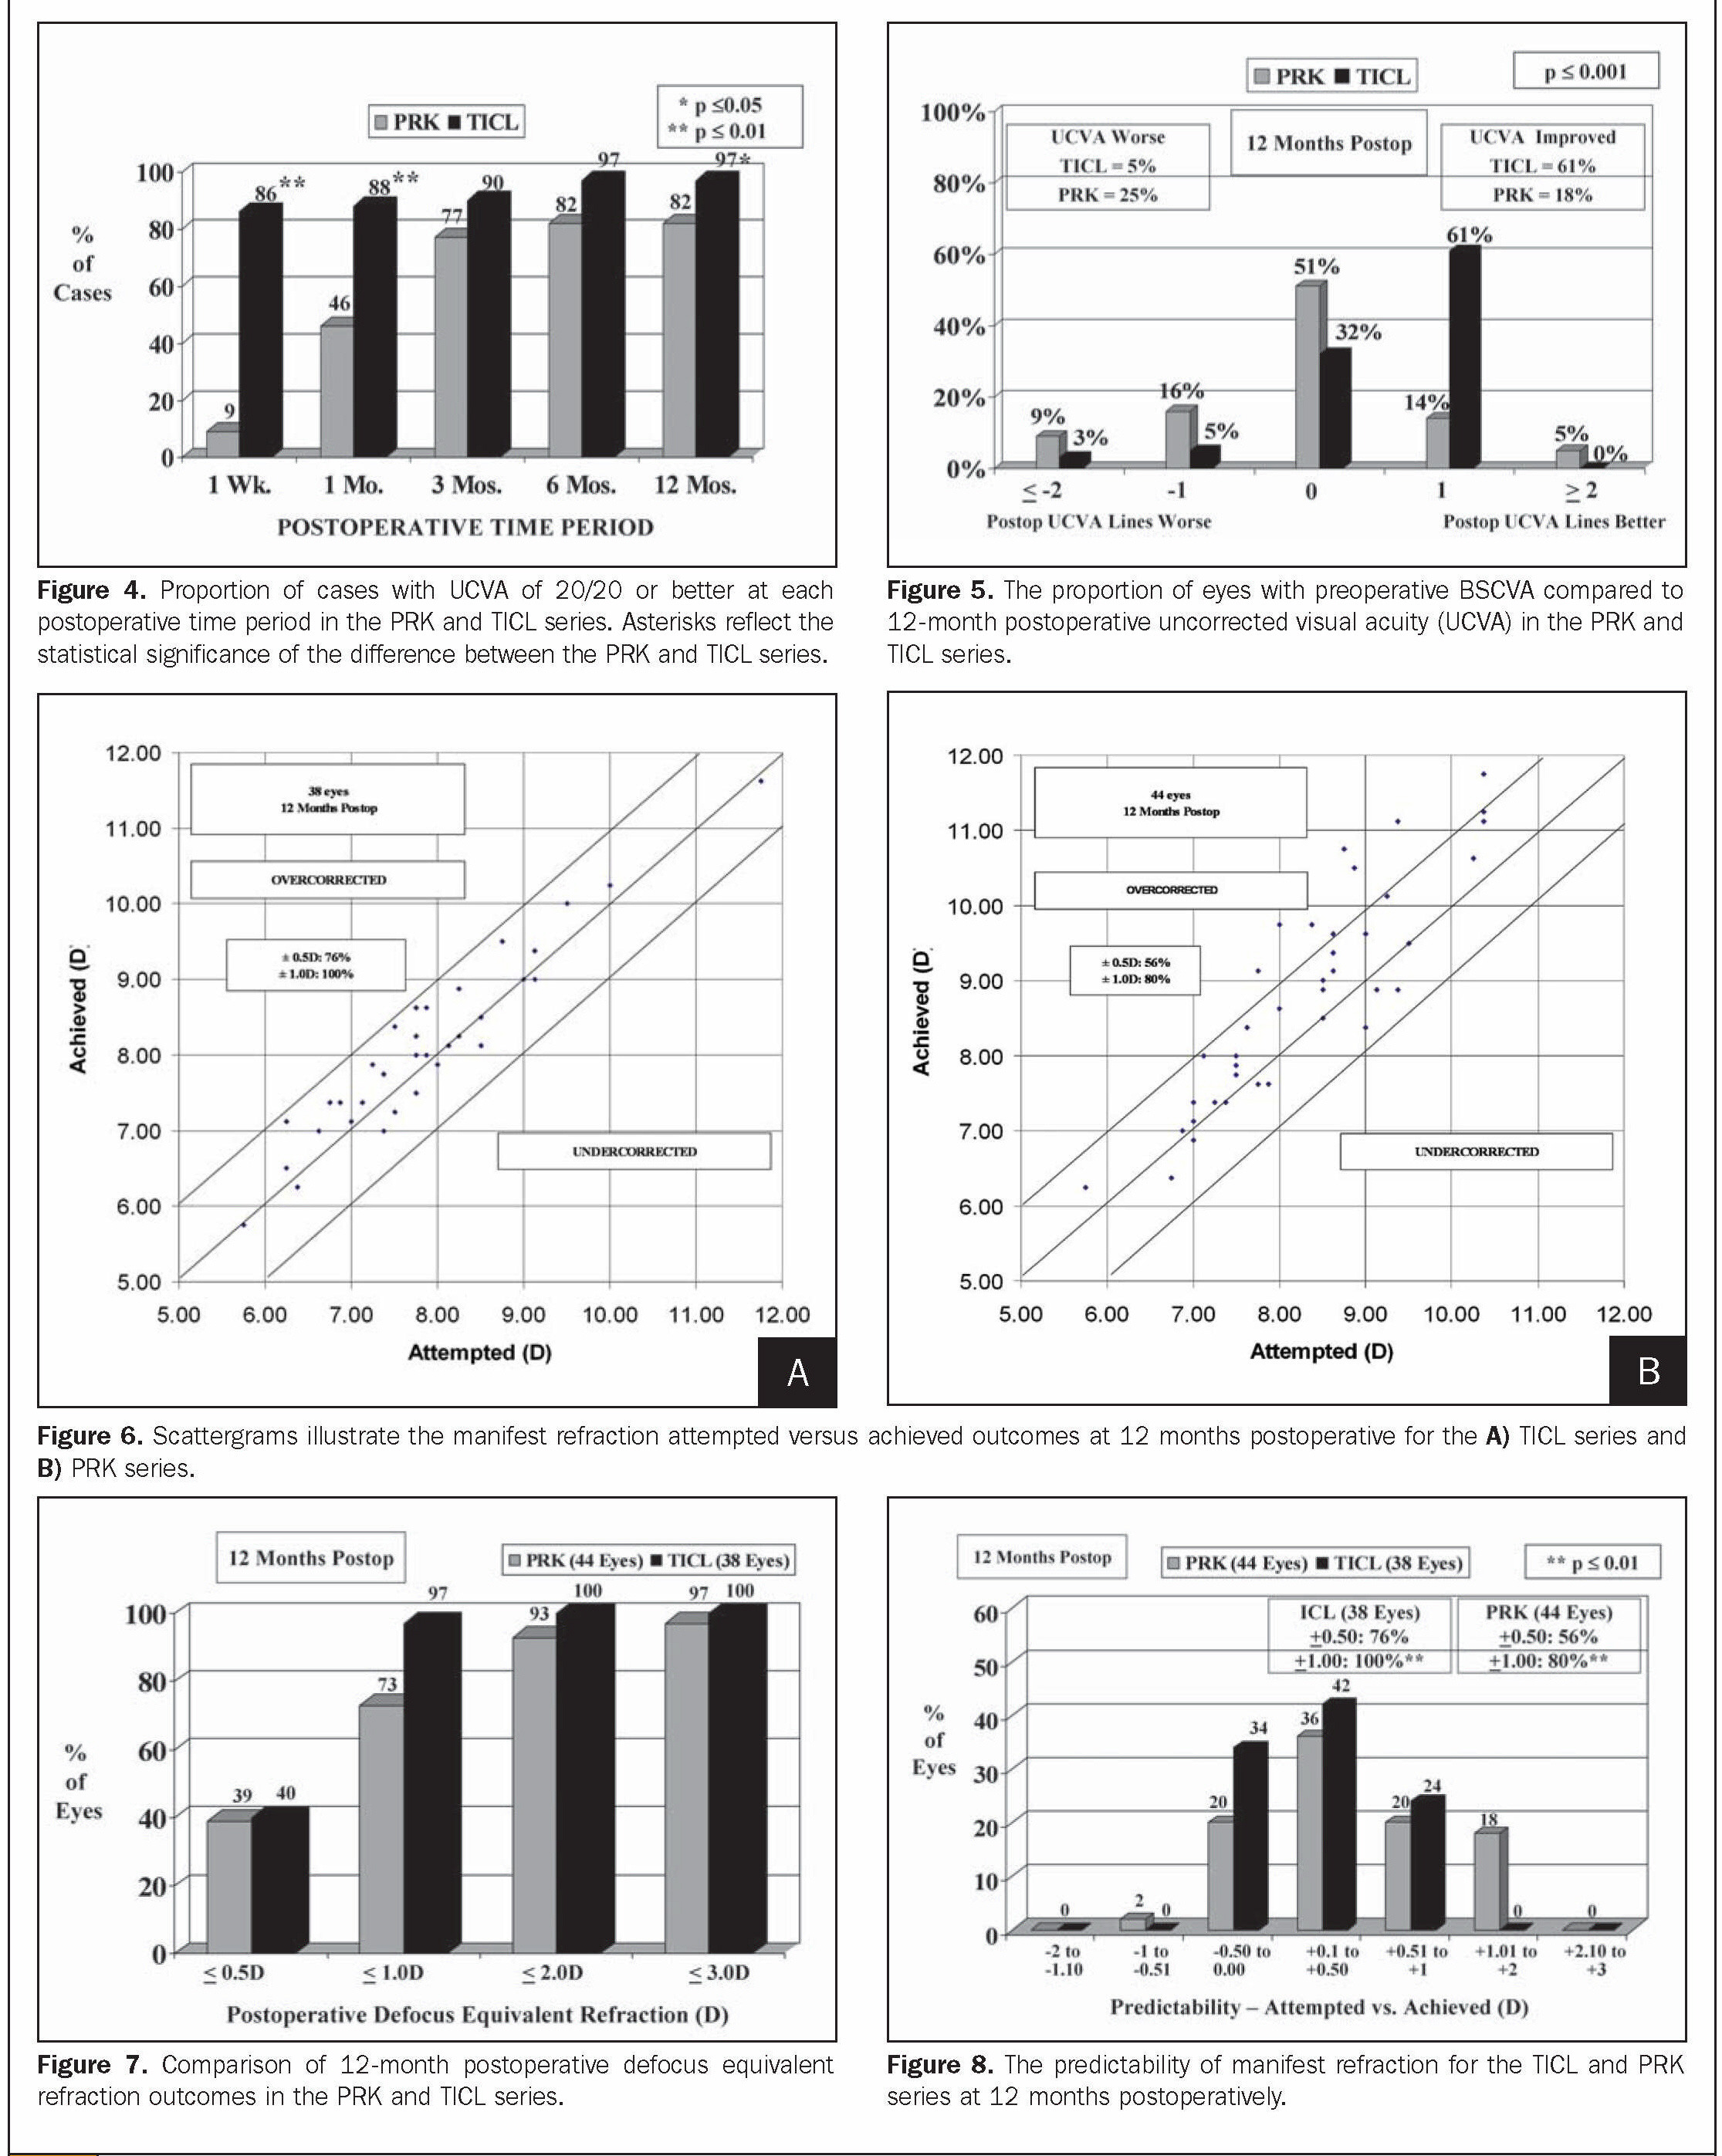 Figure 4. Proportion of cases with UCVA of 20/20 or better at each postoperative time period in the PRK and TICL series. Asterisks reflect the statistical significance of the difference between the PRK and TICL series.Figure 5. The proportion of eyes with preoperative BSCVA compared to 12-month postoperative uncorrected visual acuity (UCVA) in the PRK and TICL series.Figure 6. S e atte rg ram s illustrate the manifest refraction attempted versus achieved outcomes at 12 months postoperative for the A) TICL series and B) PRK series.Figure 7. Comparison of 12-month postoperative defocus equivalent refraction outcomes in the PRK and TICL series.Figure 8. The predictability of manifest refraction for the TICL and PRK series at 12 months postoperatively.